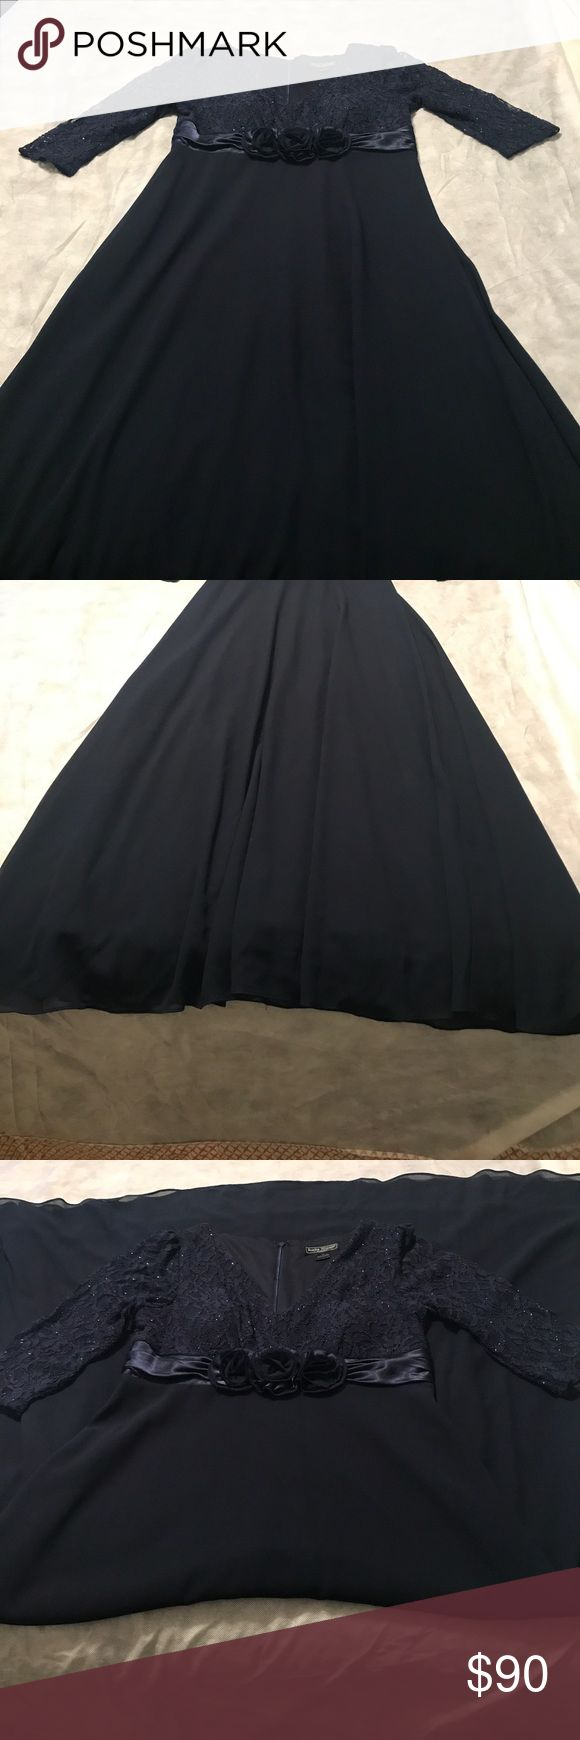 💞Navy blue dress Beautiful Jessica Howard long navy blue dress, lace on top with satin flowers  around the bust area, solid blue on bottom Jessica Howard Dresses